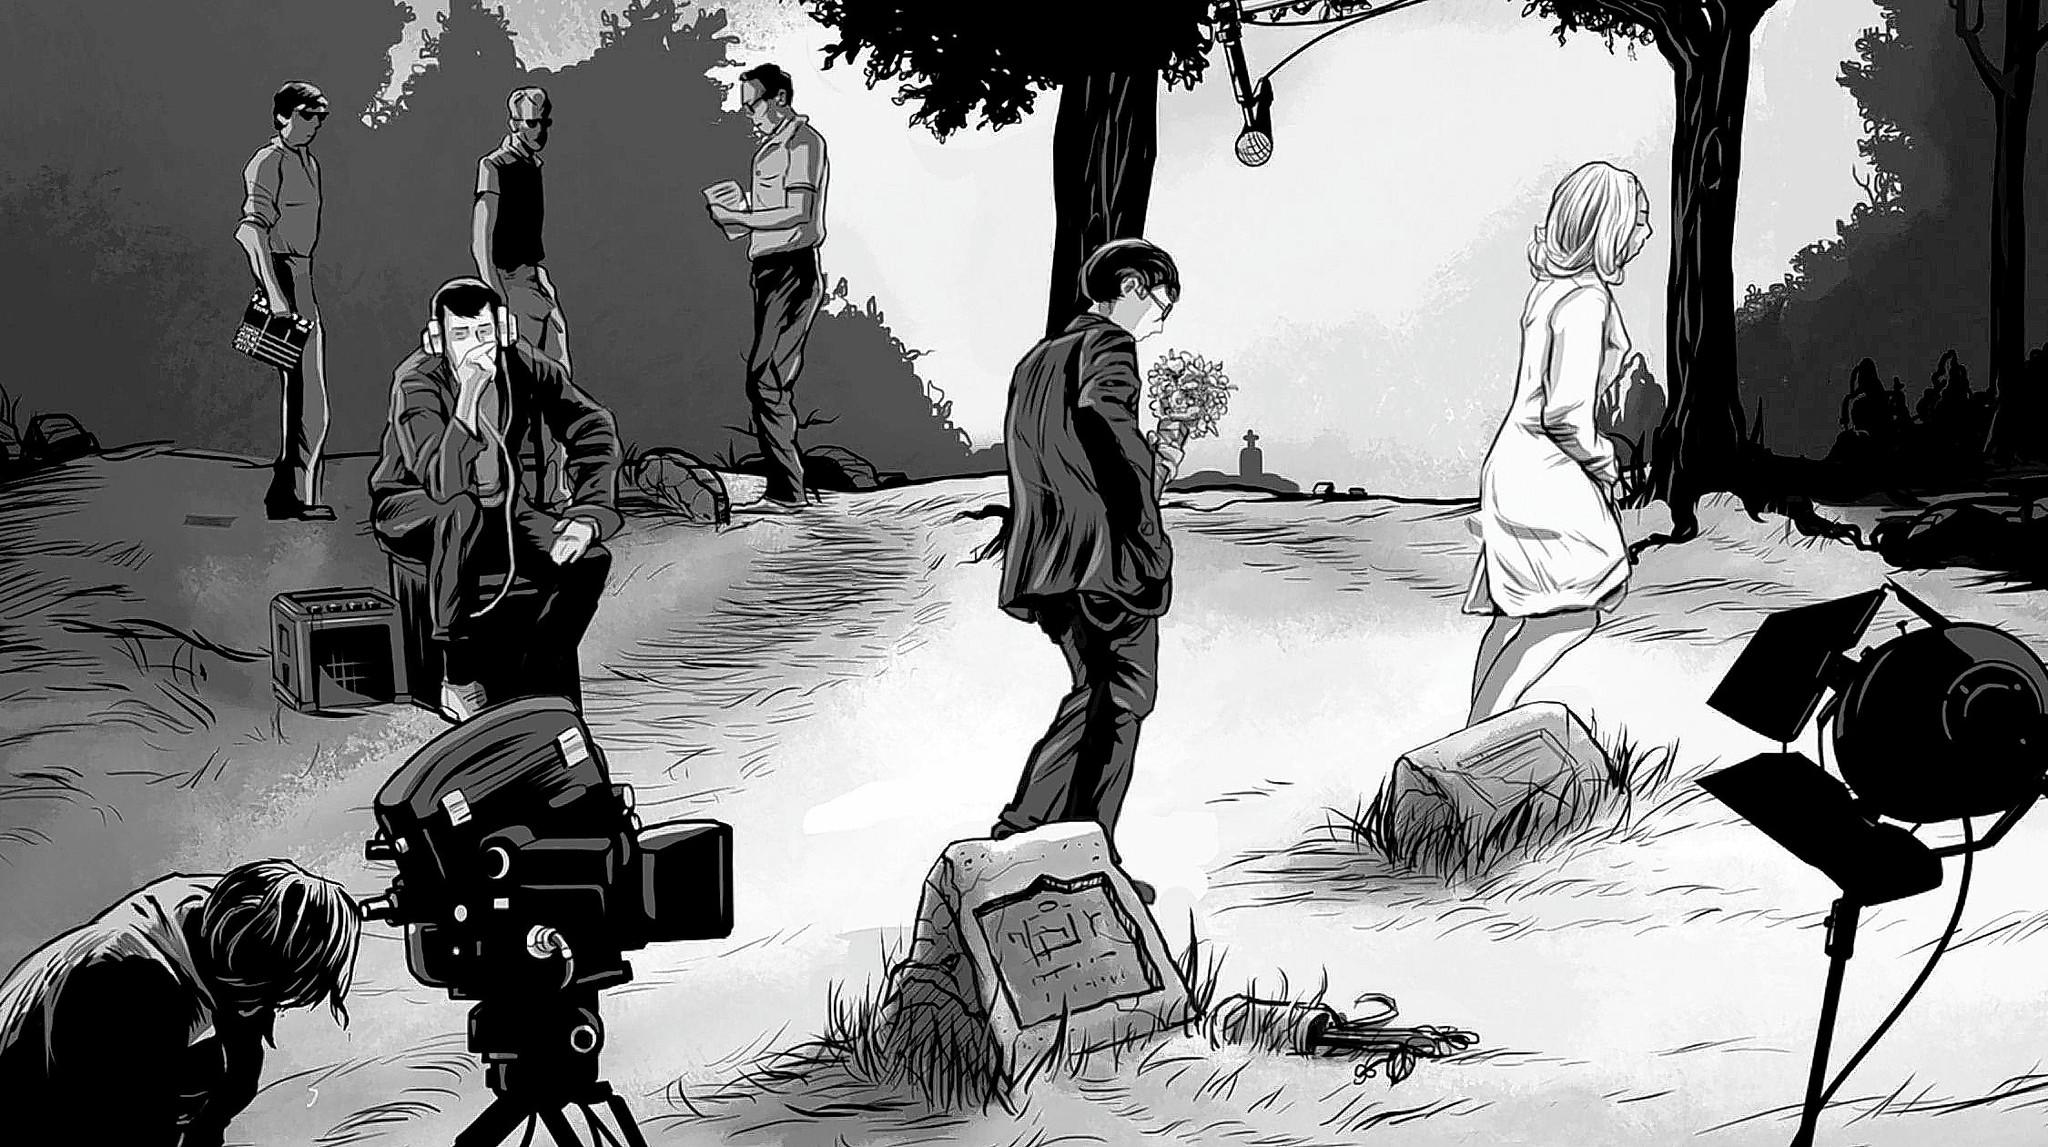 An illustration of the cemetery scene from the seminal 1968 horror film 'Night of the Living Dead' from 'Birth of the Living Dead,' a documentary by Rob Kuhns. The George Romero film was shot in Pittsburgh.